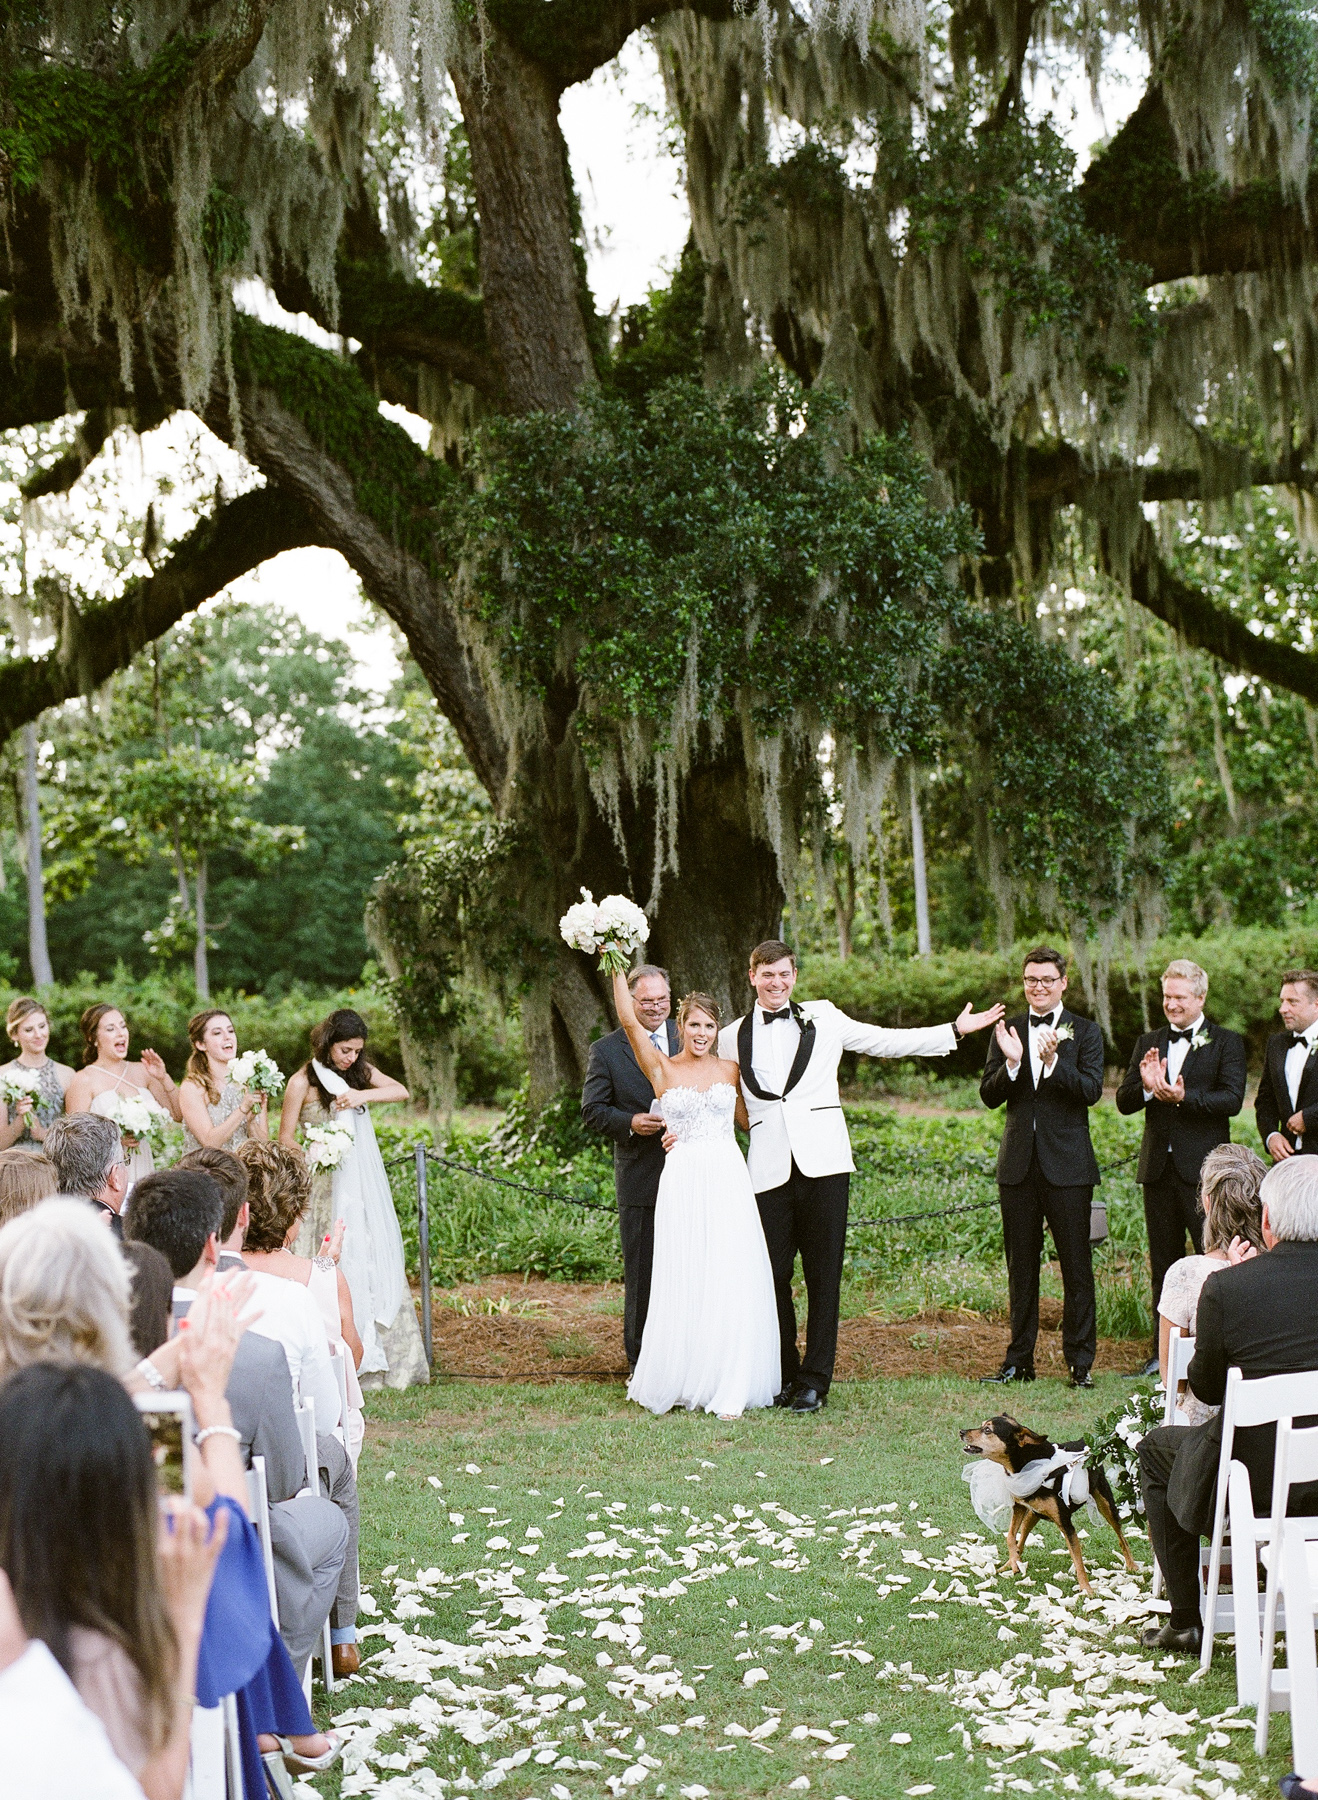 NC-Garden-Wedding-Venue-Film-Photographer-21.jpg